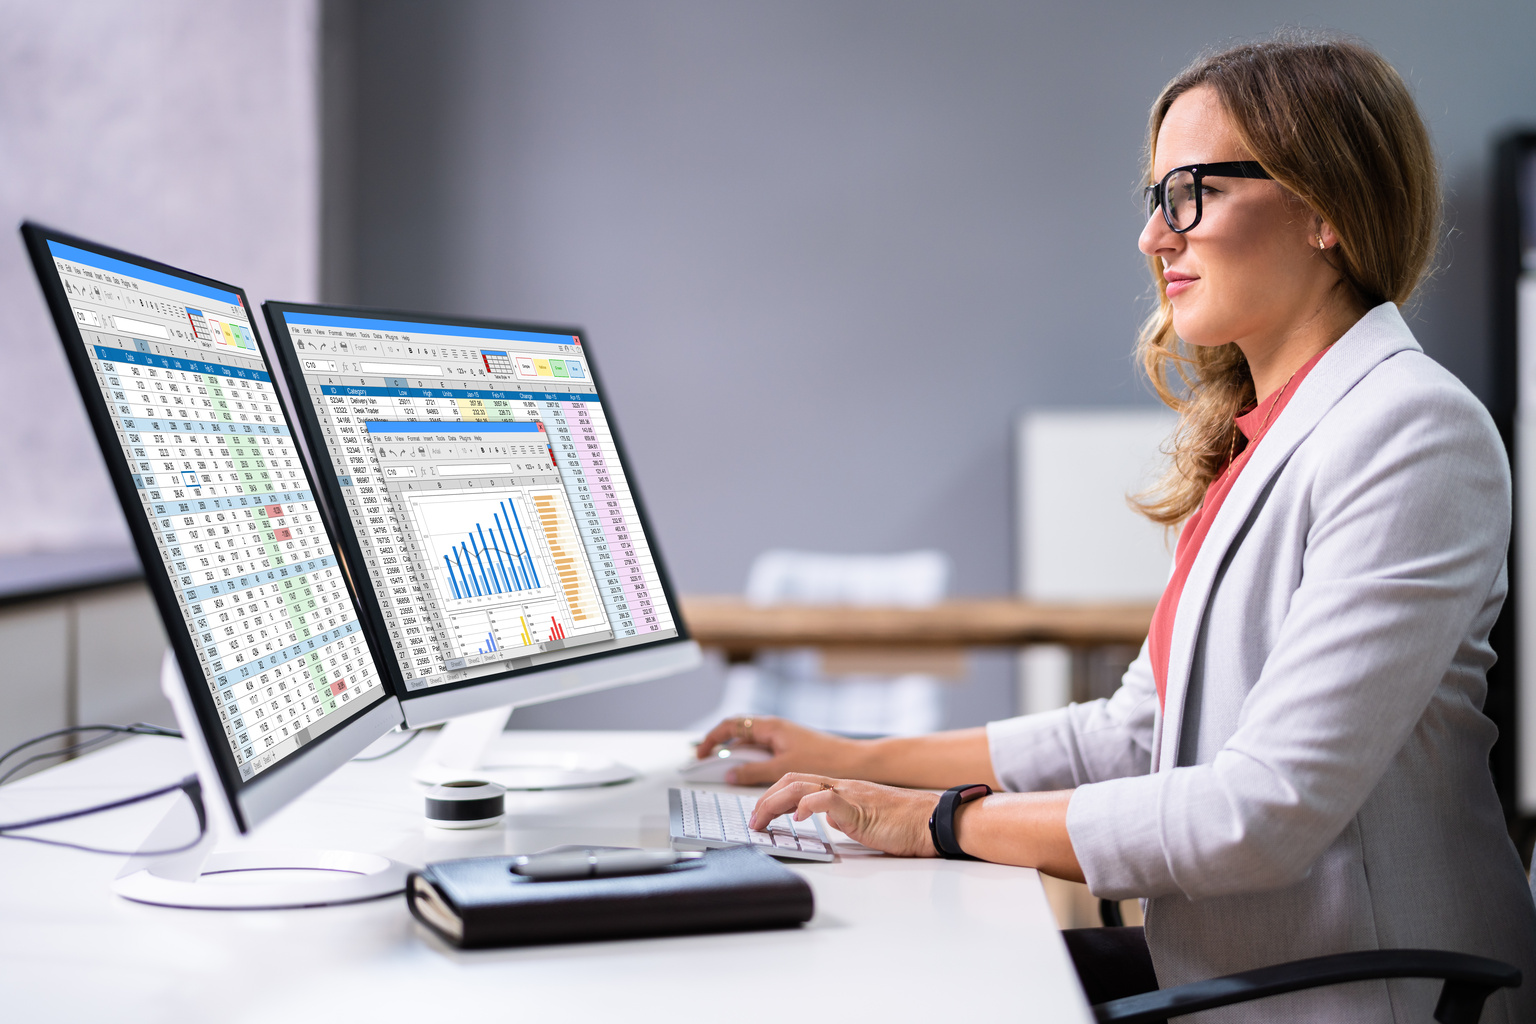 Business woman working with taxes